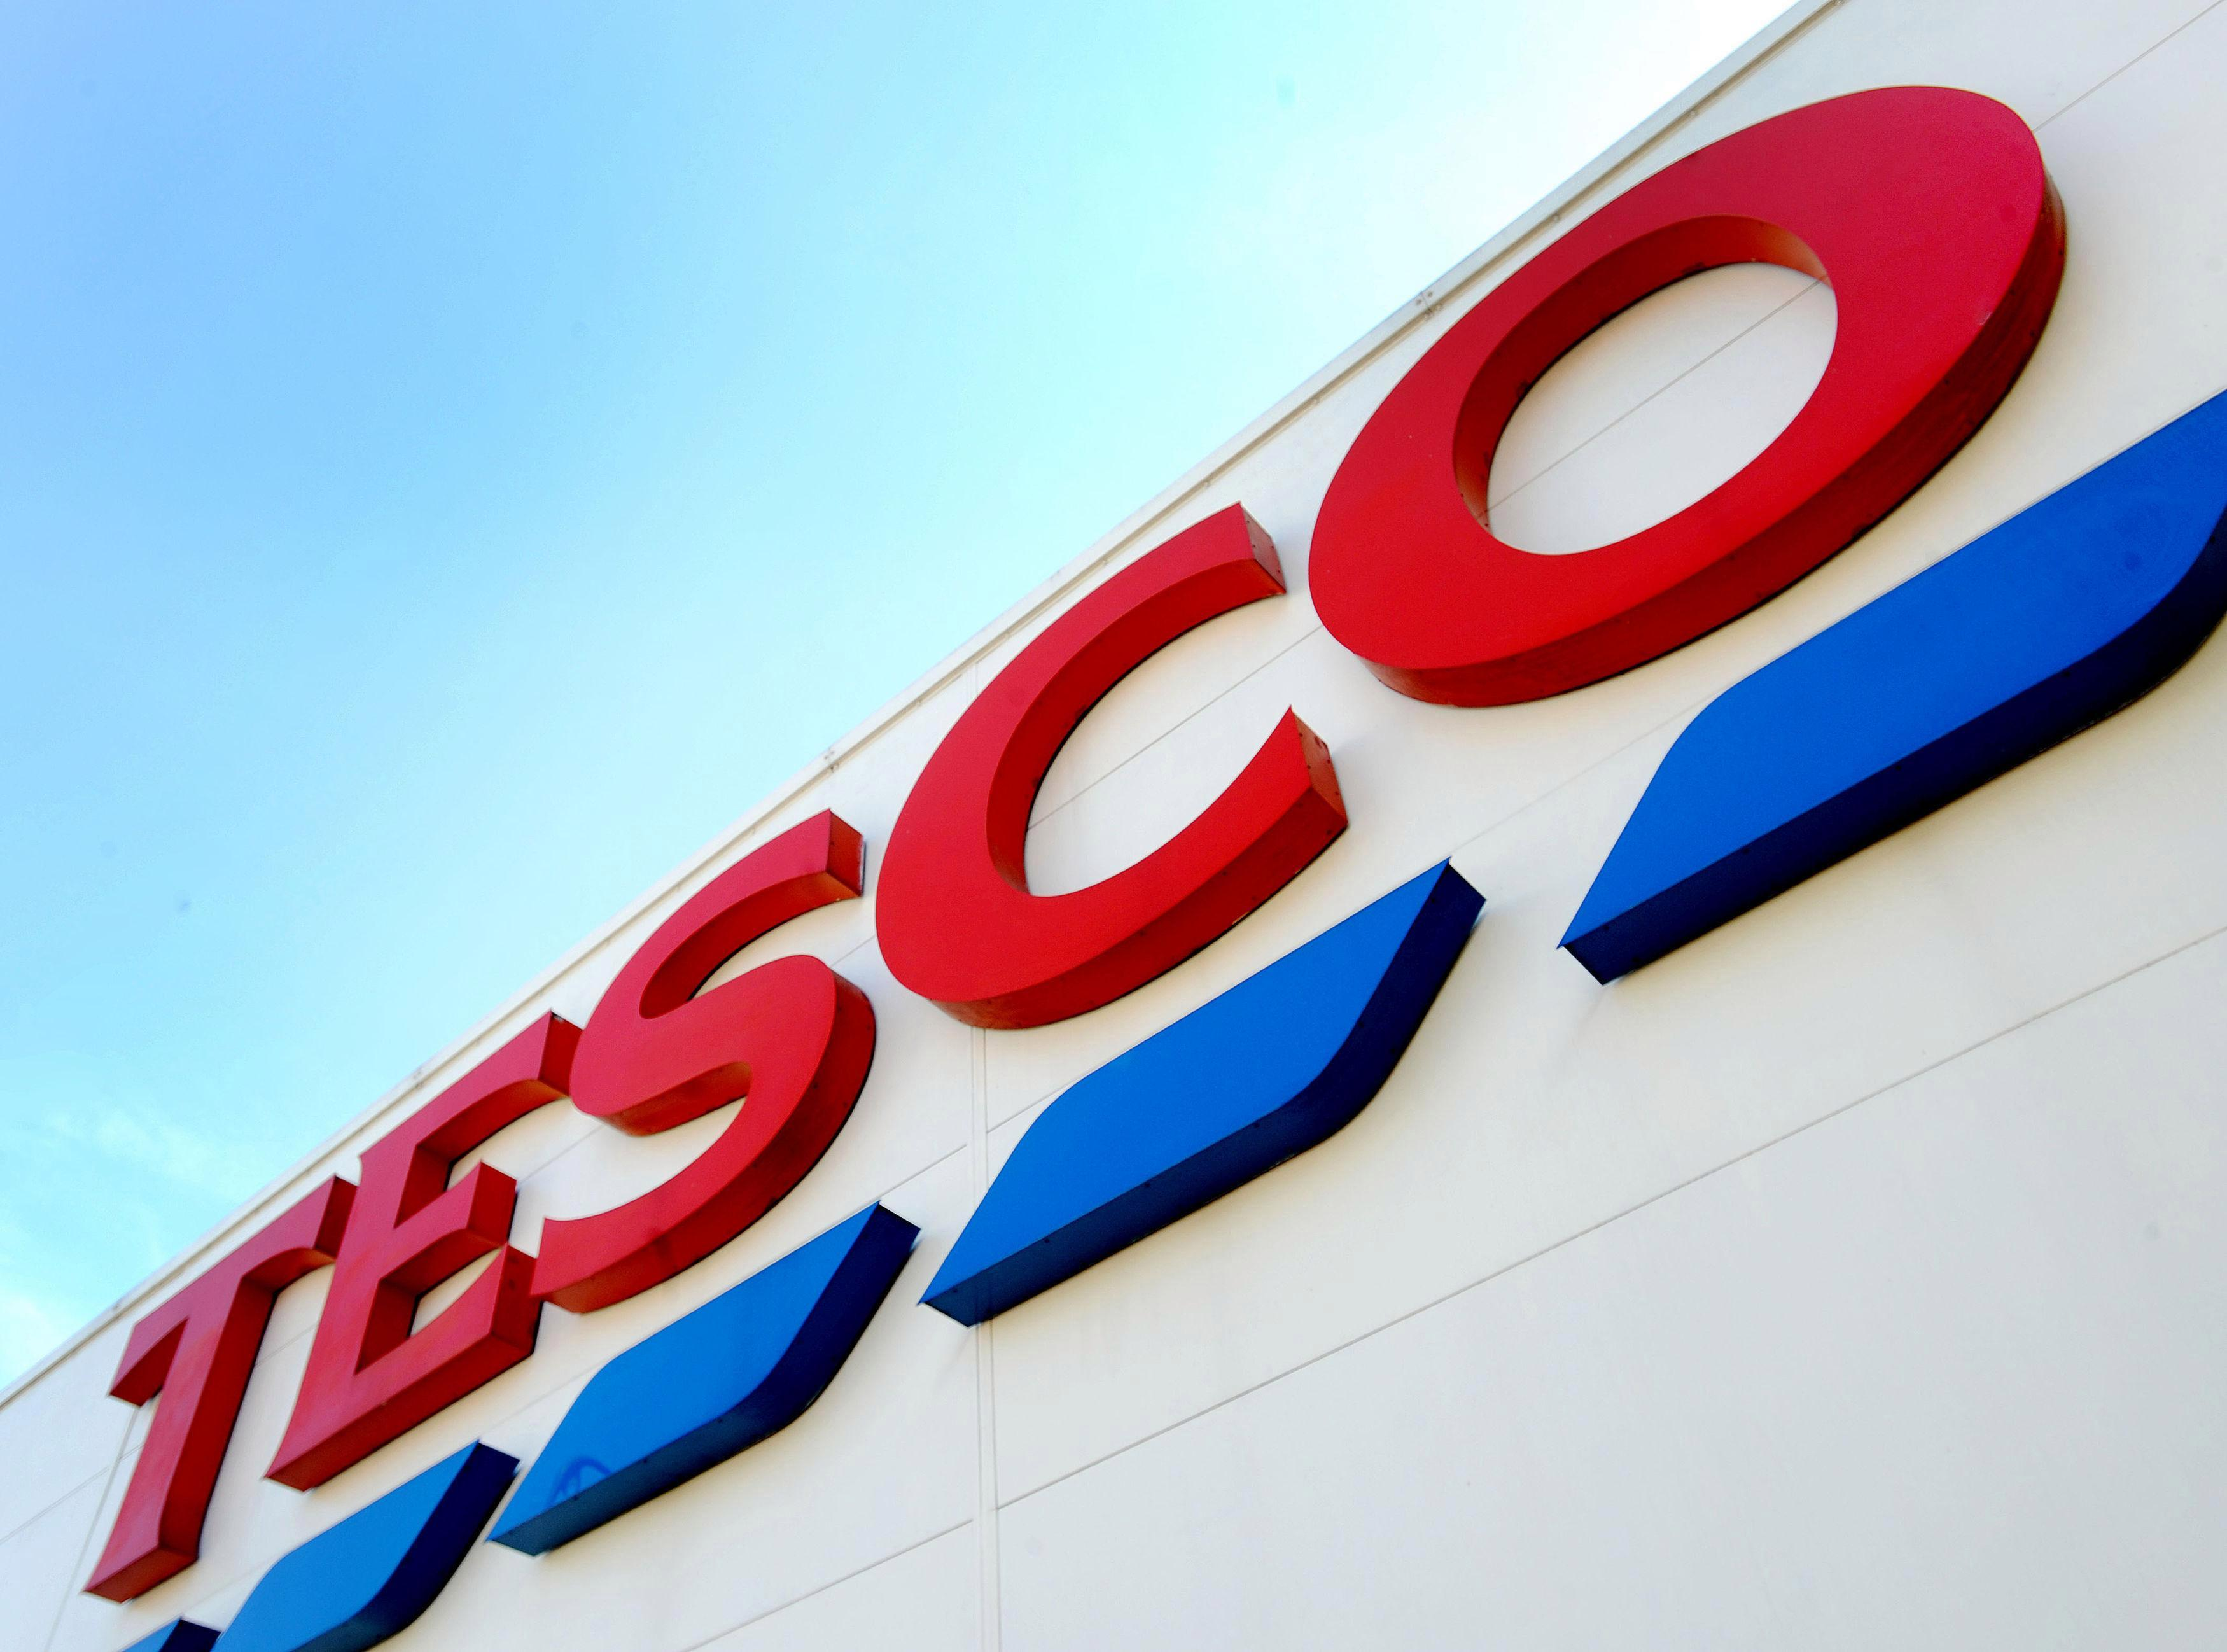 Tesco buys up freezers to stockpile extra food for No Deal Brexit